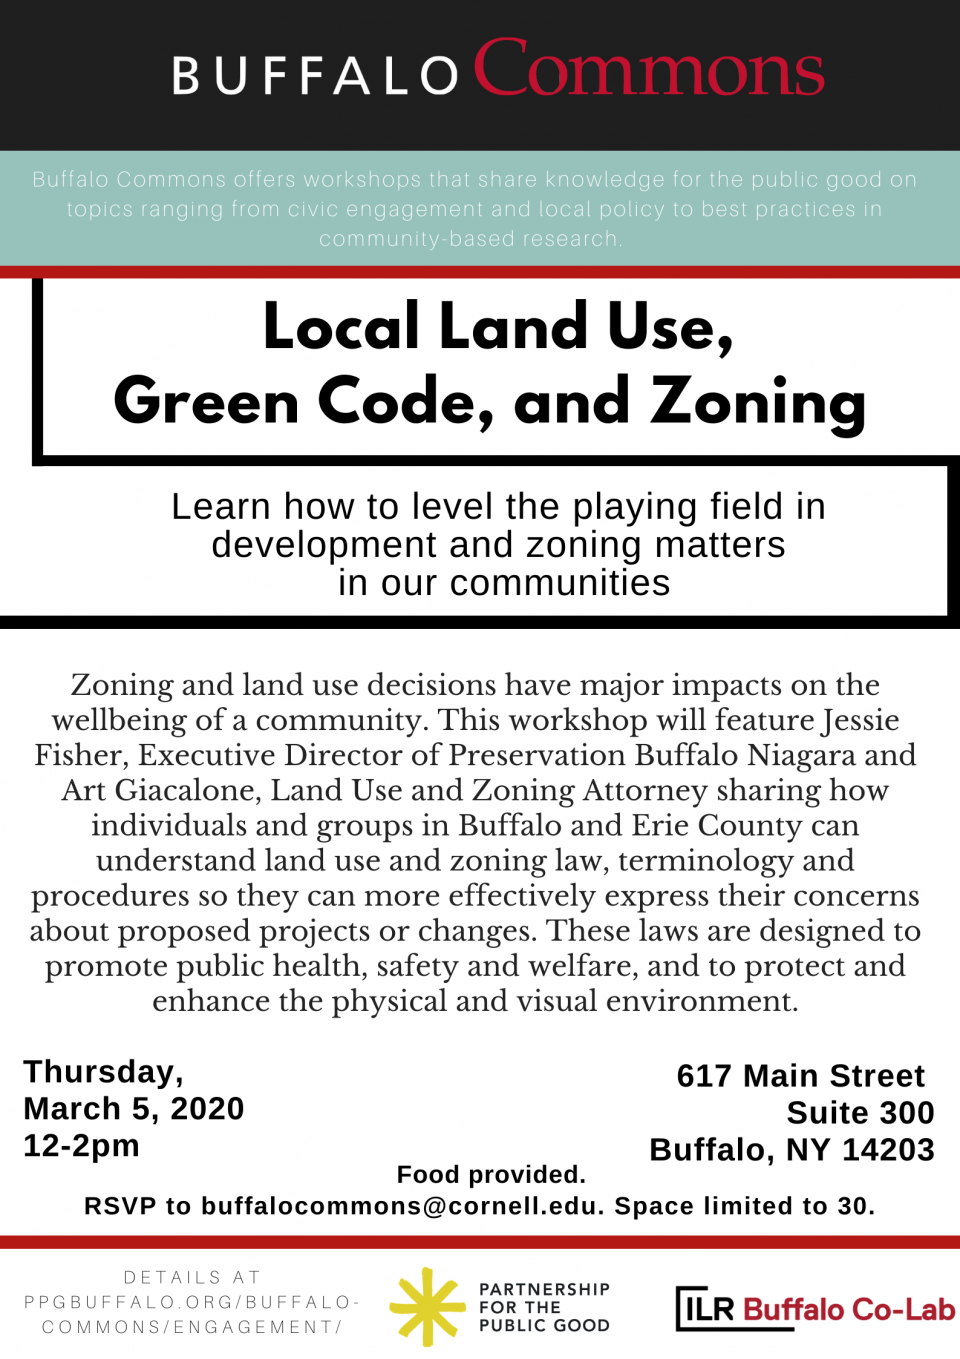 Buffalo Commons Workshop: Local Land Use, Green Code, and Zoning